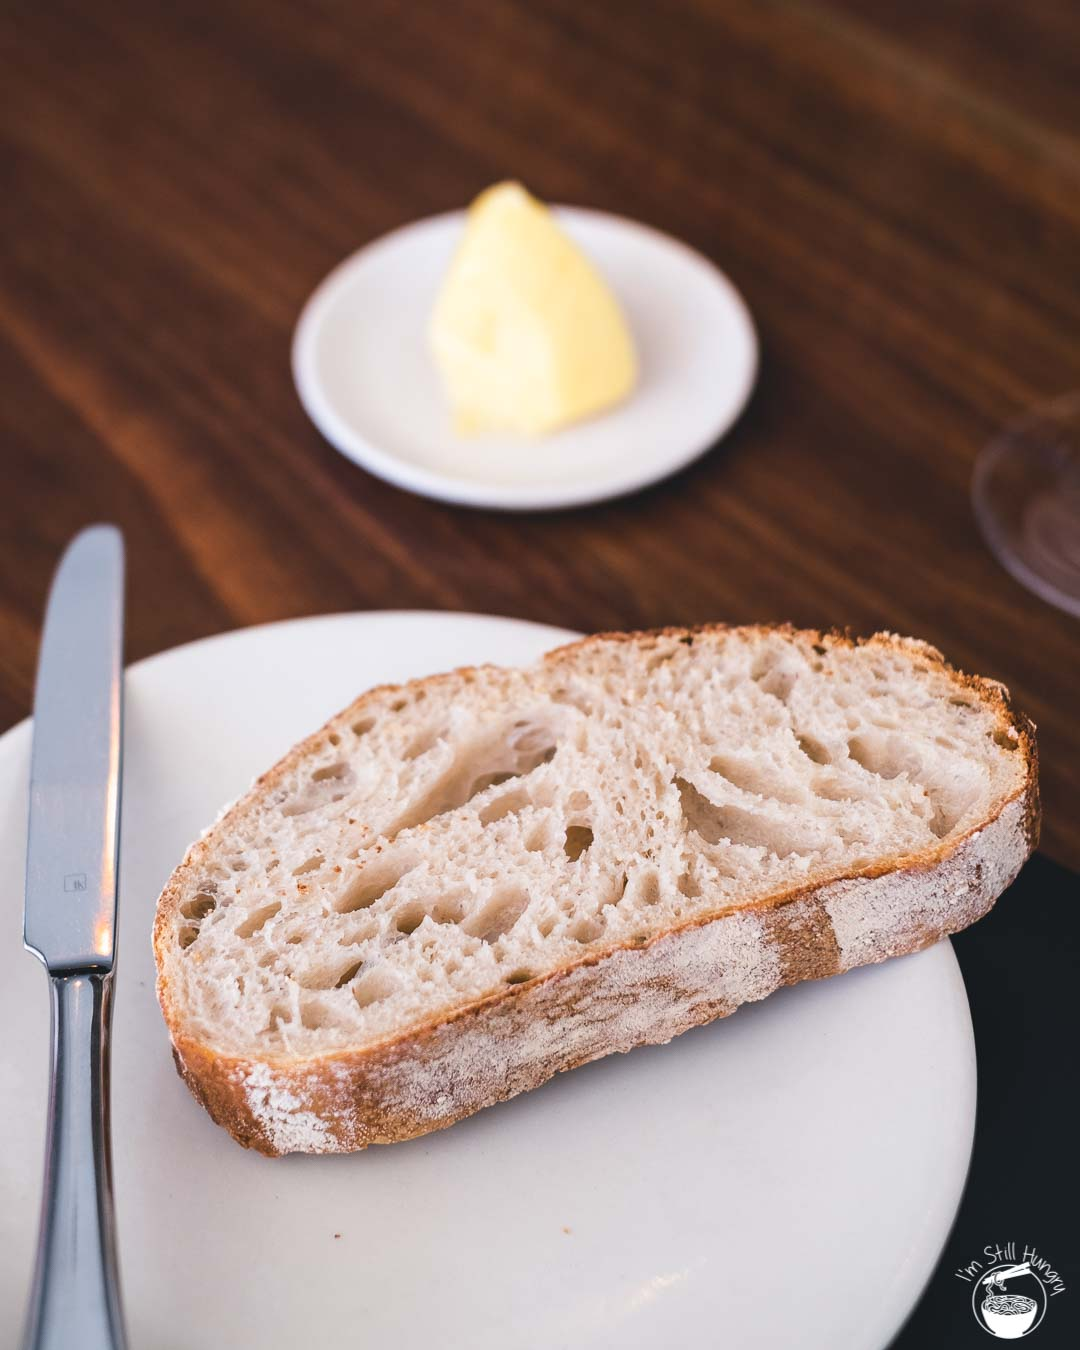 Sixpenny Stanmore House-baked sourdough w/mascarpone butter